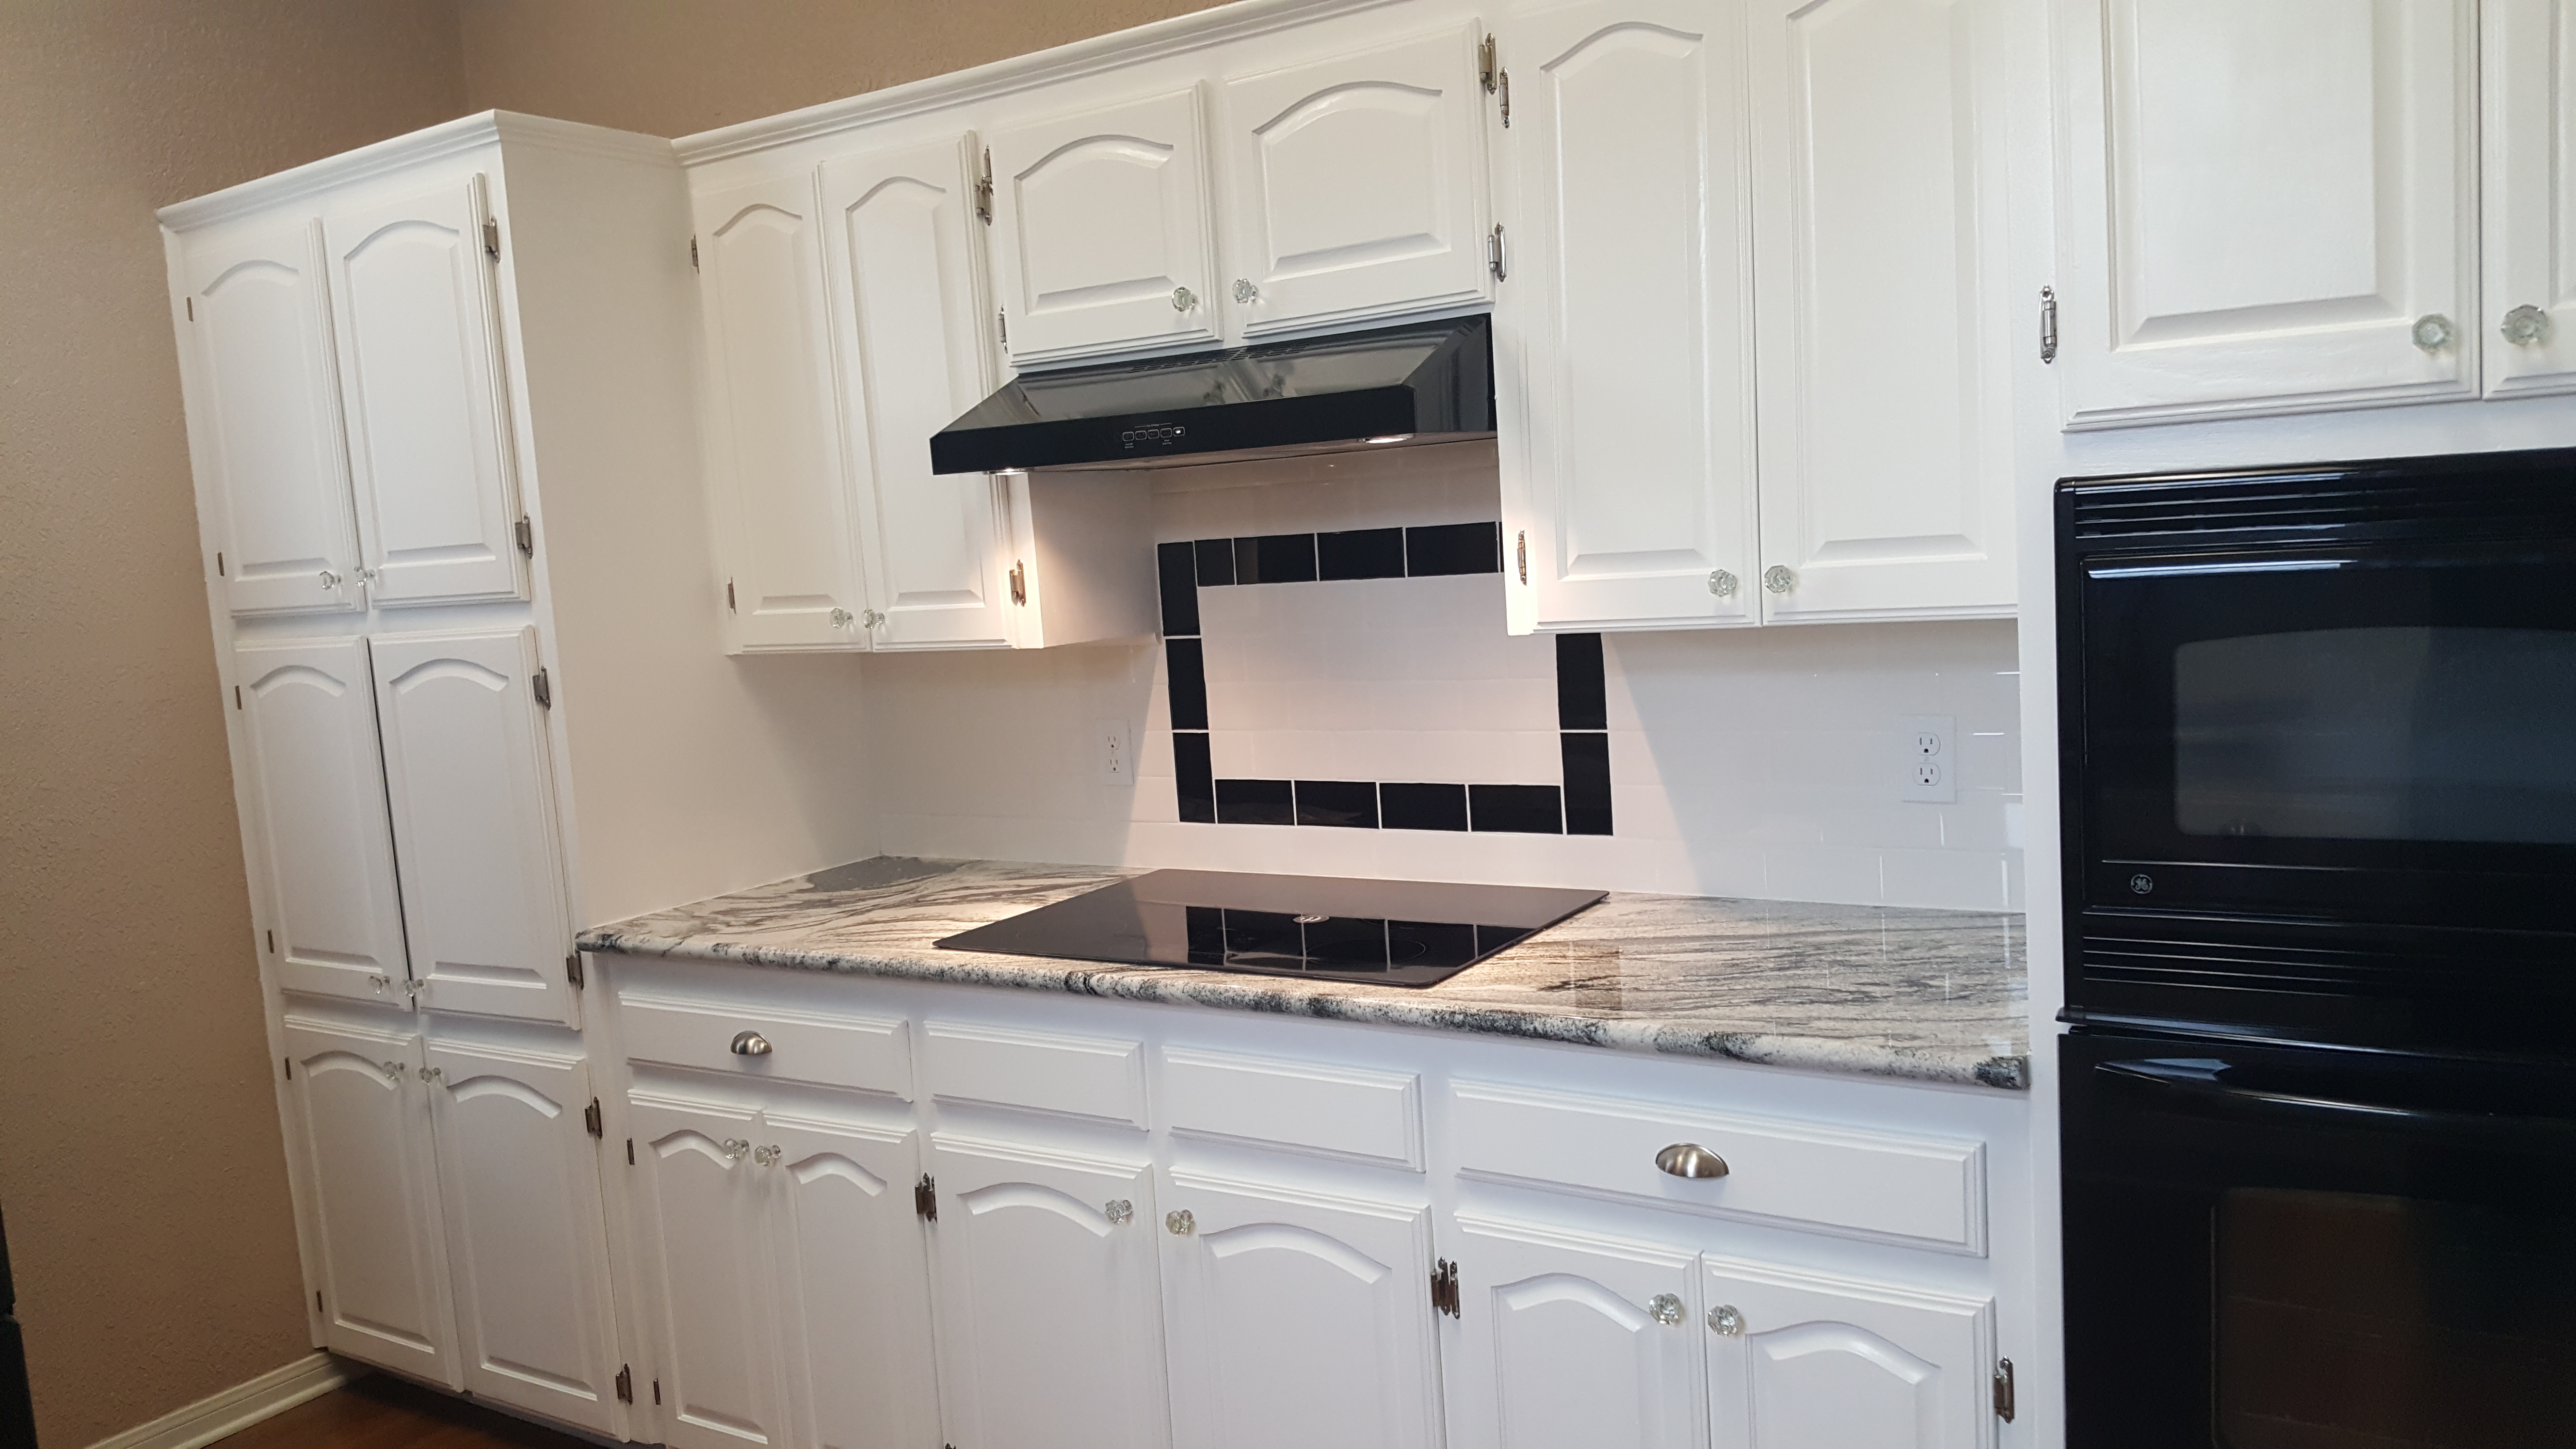 kitchen remodeling | copperas cove & killeen, tx | armor home repair